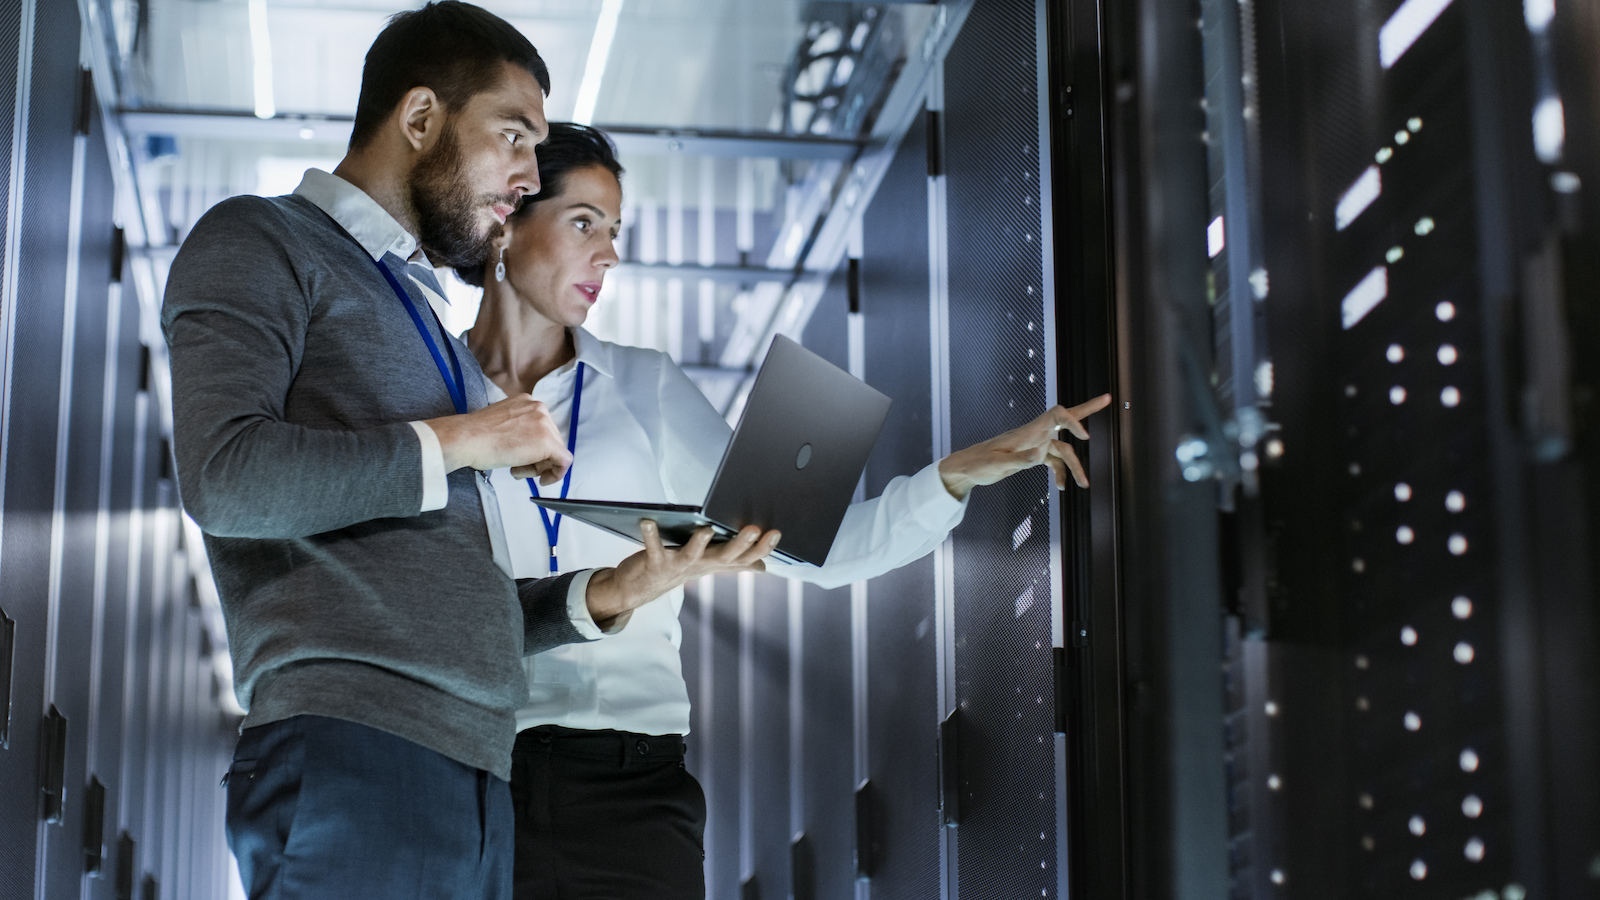 stock-photo-male-it-specialist-holds-laptop-and-discusses-work-with-female-server-technician-they-re-standing  1600-1